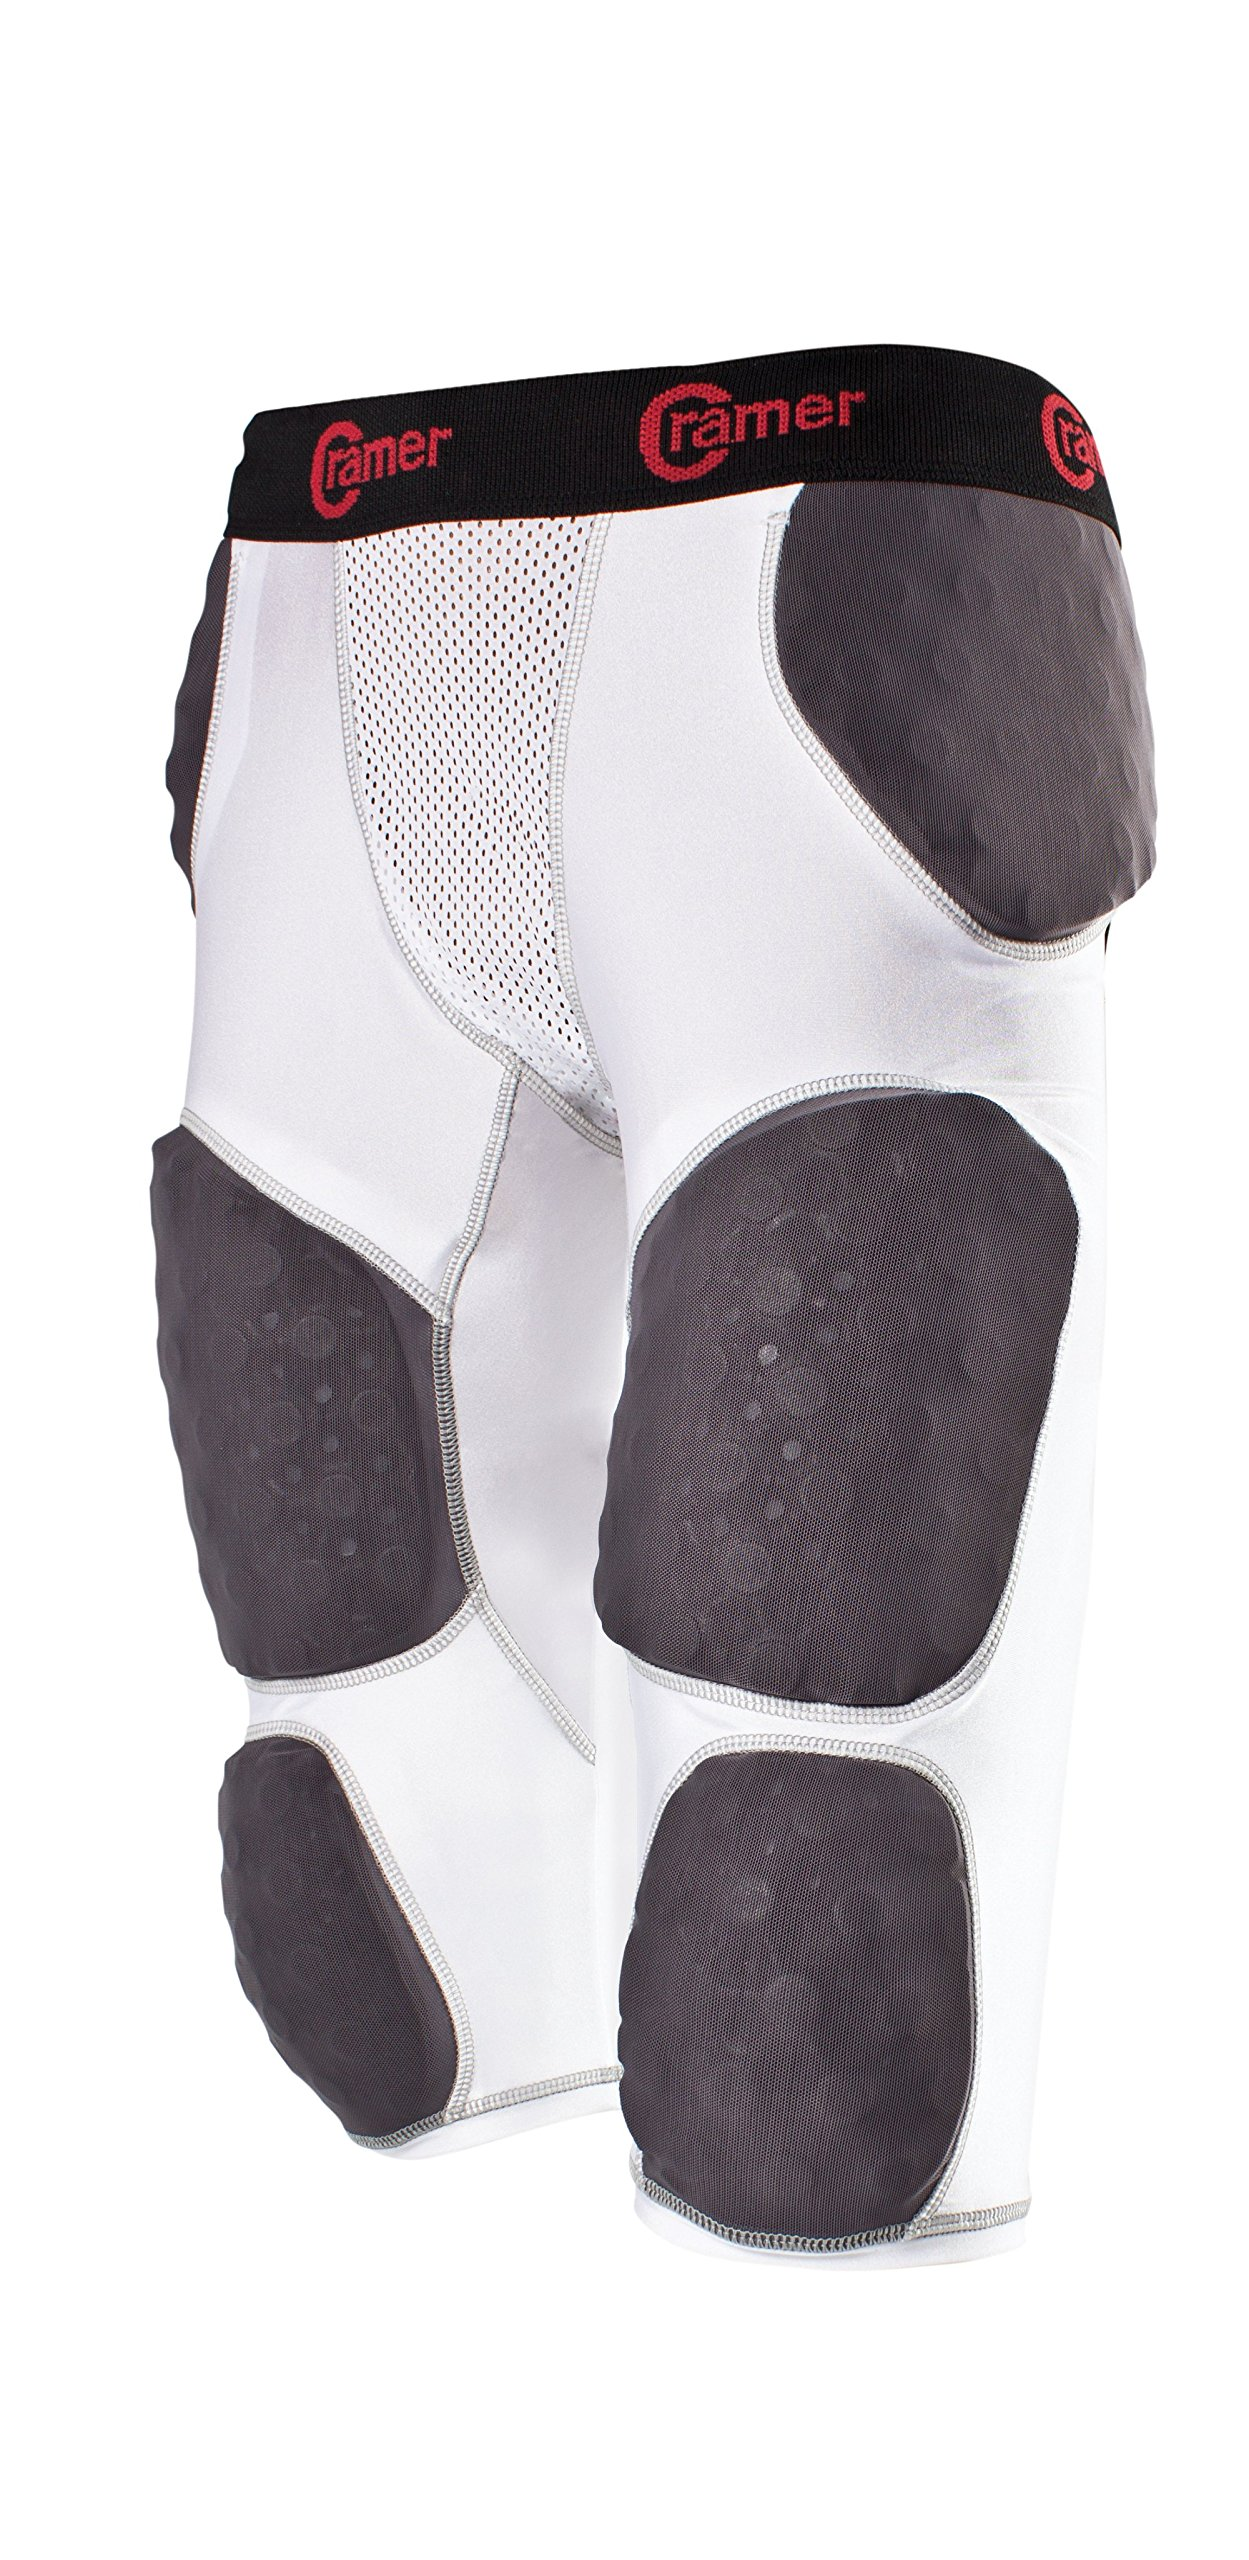 Cramer Lightning 7 Pad Football Girdle With Integrated Hip, Tailbone and Thigh Pads, Anti-Bacterial and Moisture-Wicking Fabric, Great Protection Without Impeding Athletic Performance, White, Small